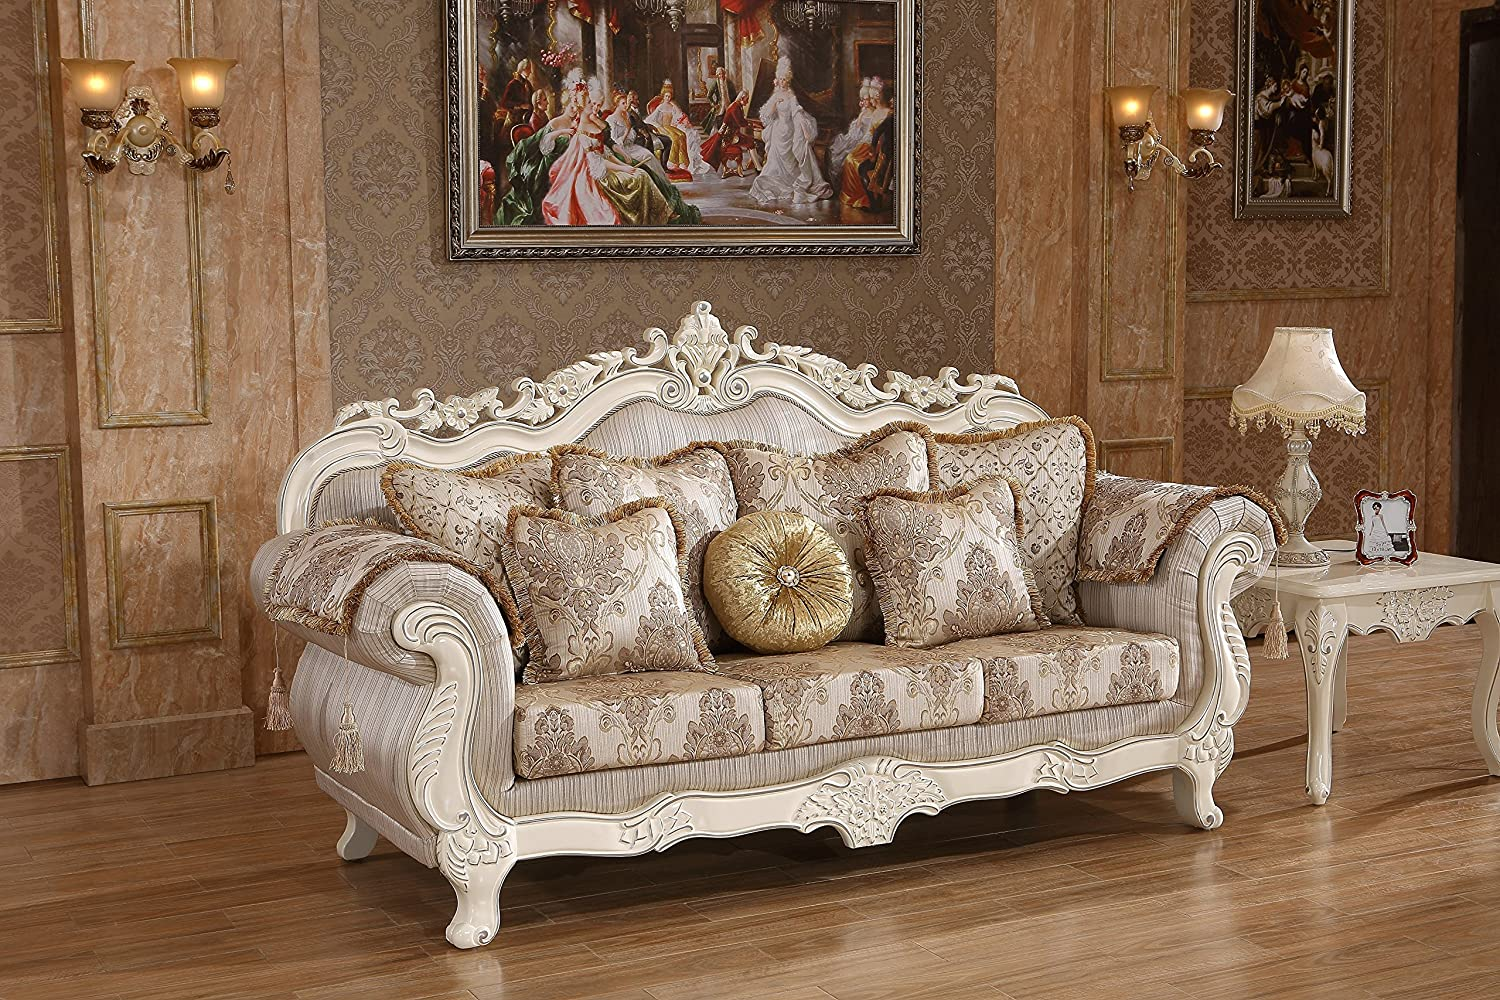 Meridian furniture 691 s serena solid wood upholstered sofa with traditional hand carved designs rolled arms and imported fabrics pearl white finish with